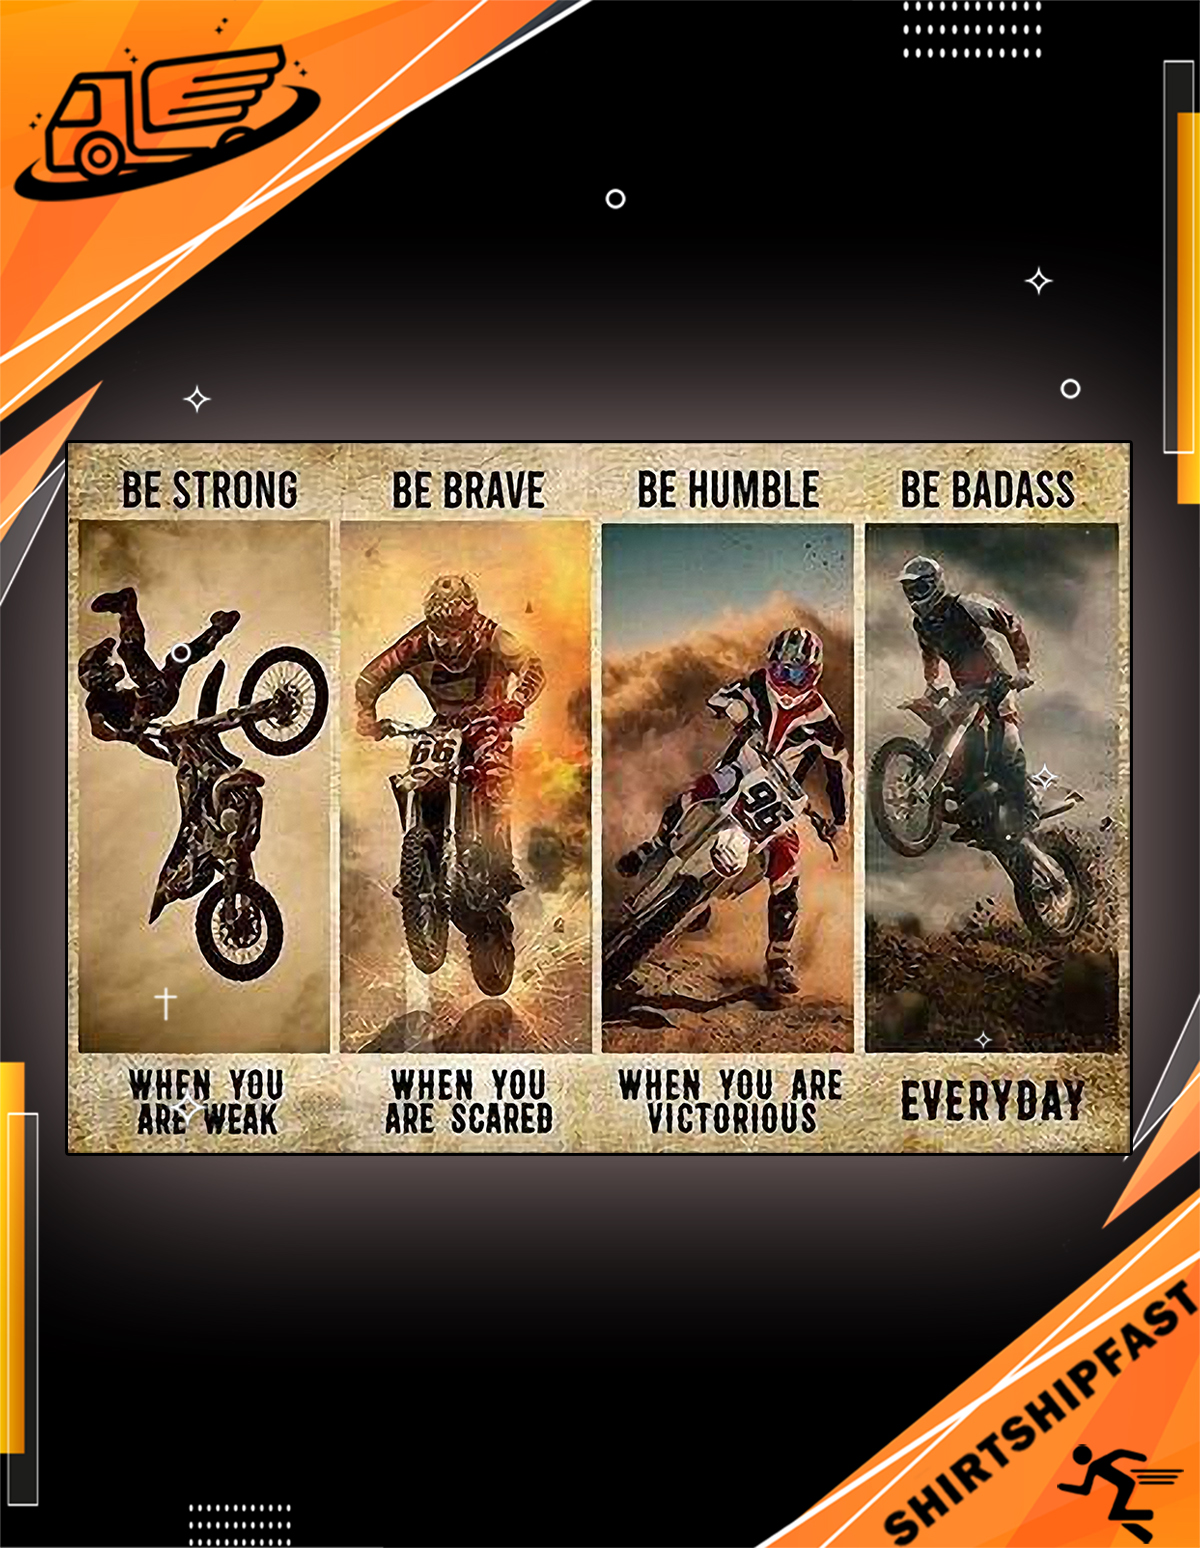 Motor be strong be brave be humble be badass canvas